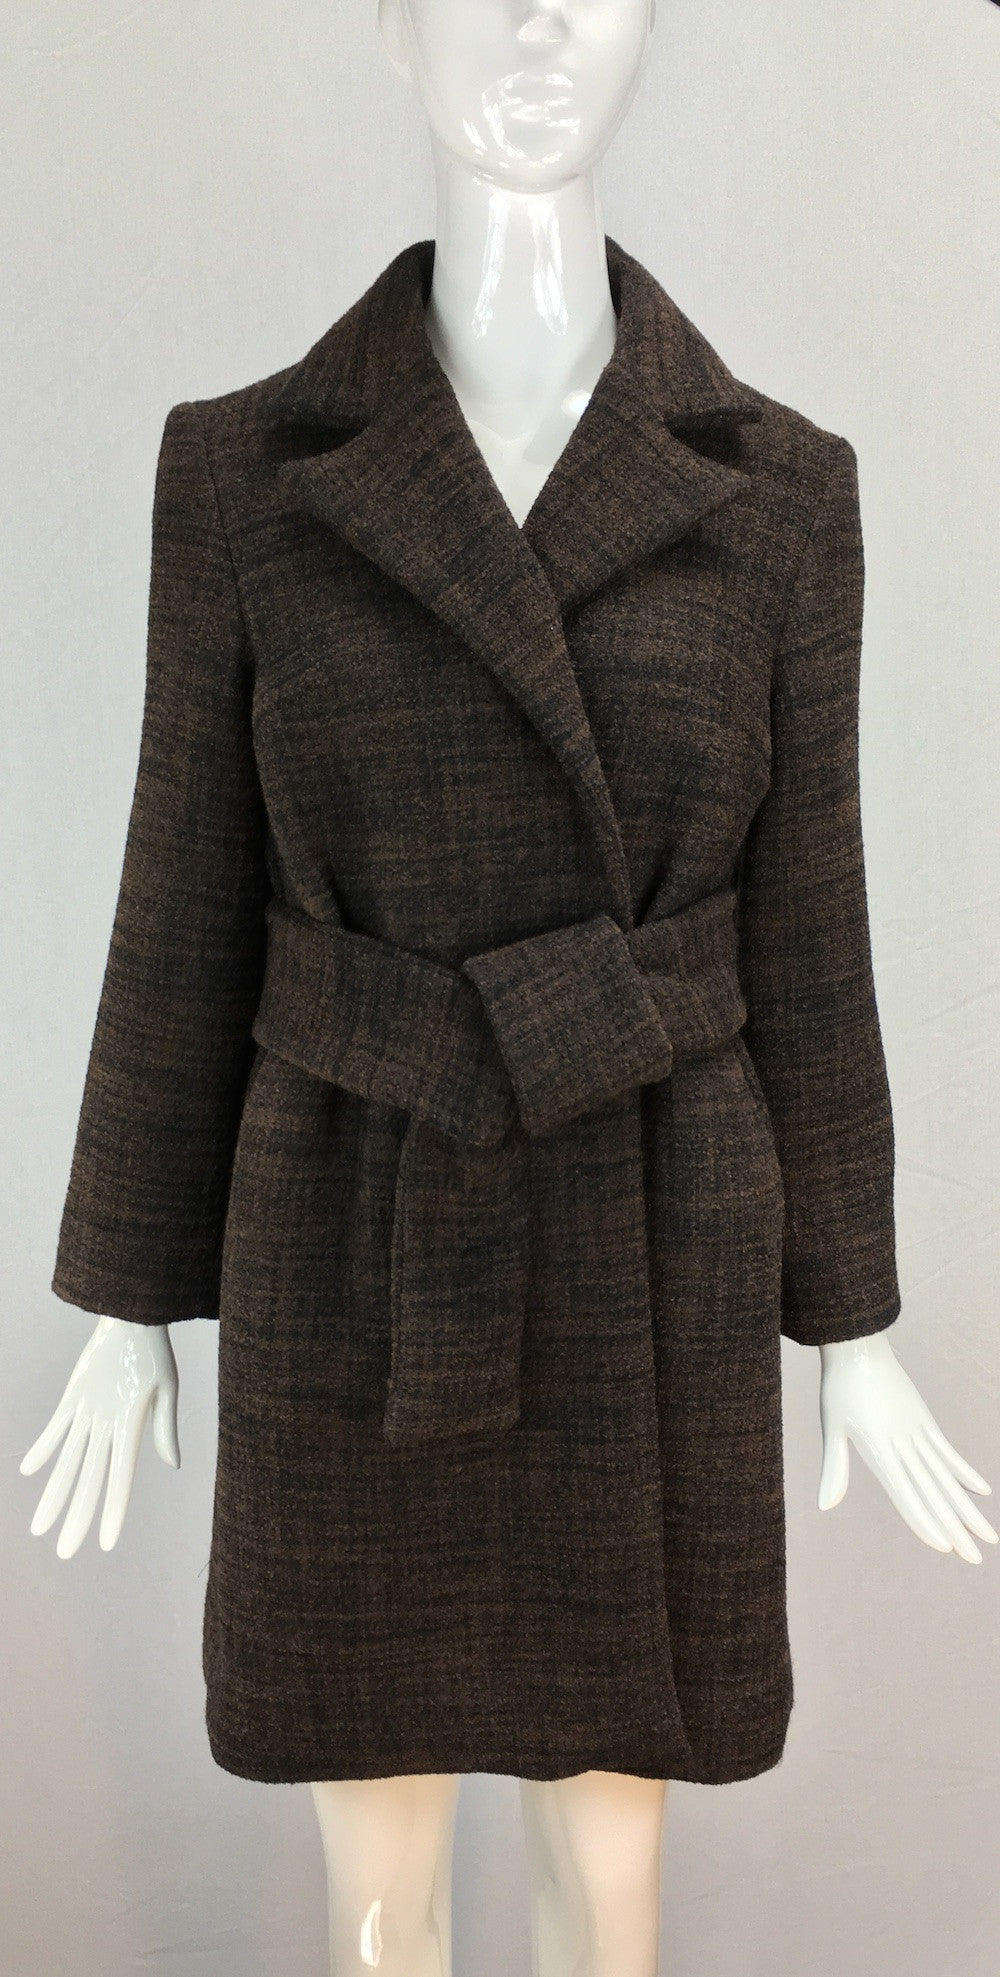 Janet Deleuse Designer Couture Wool Coat, SALE!